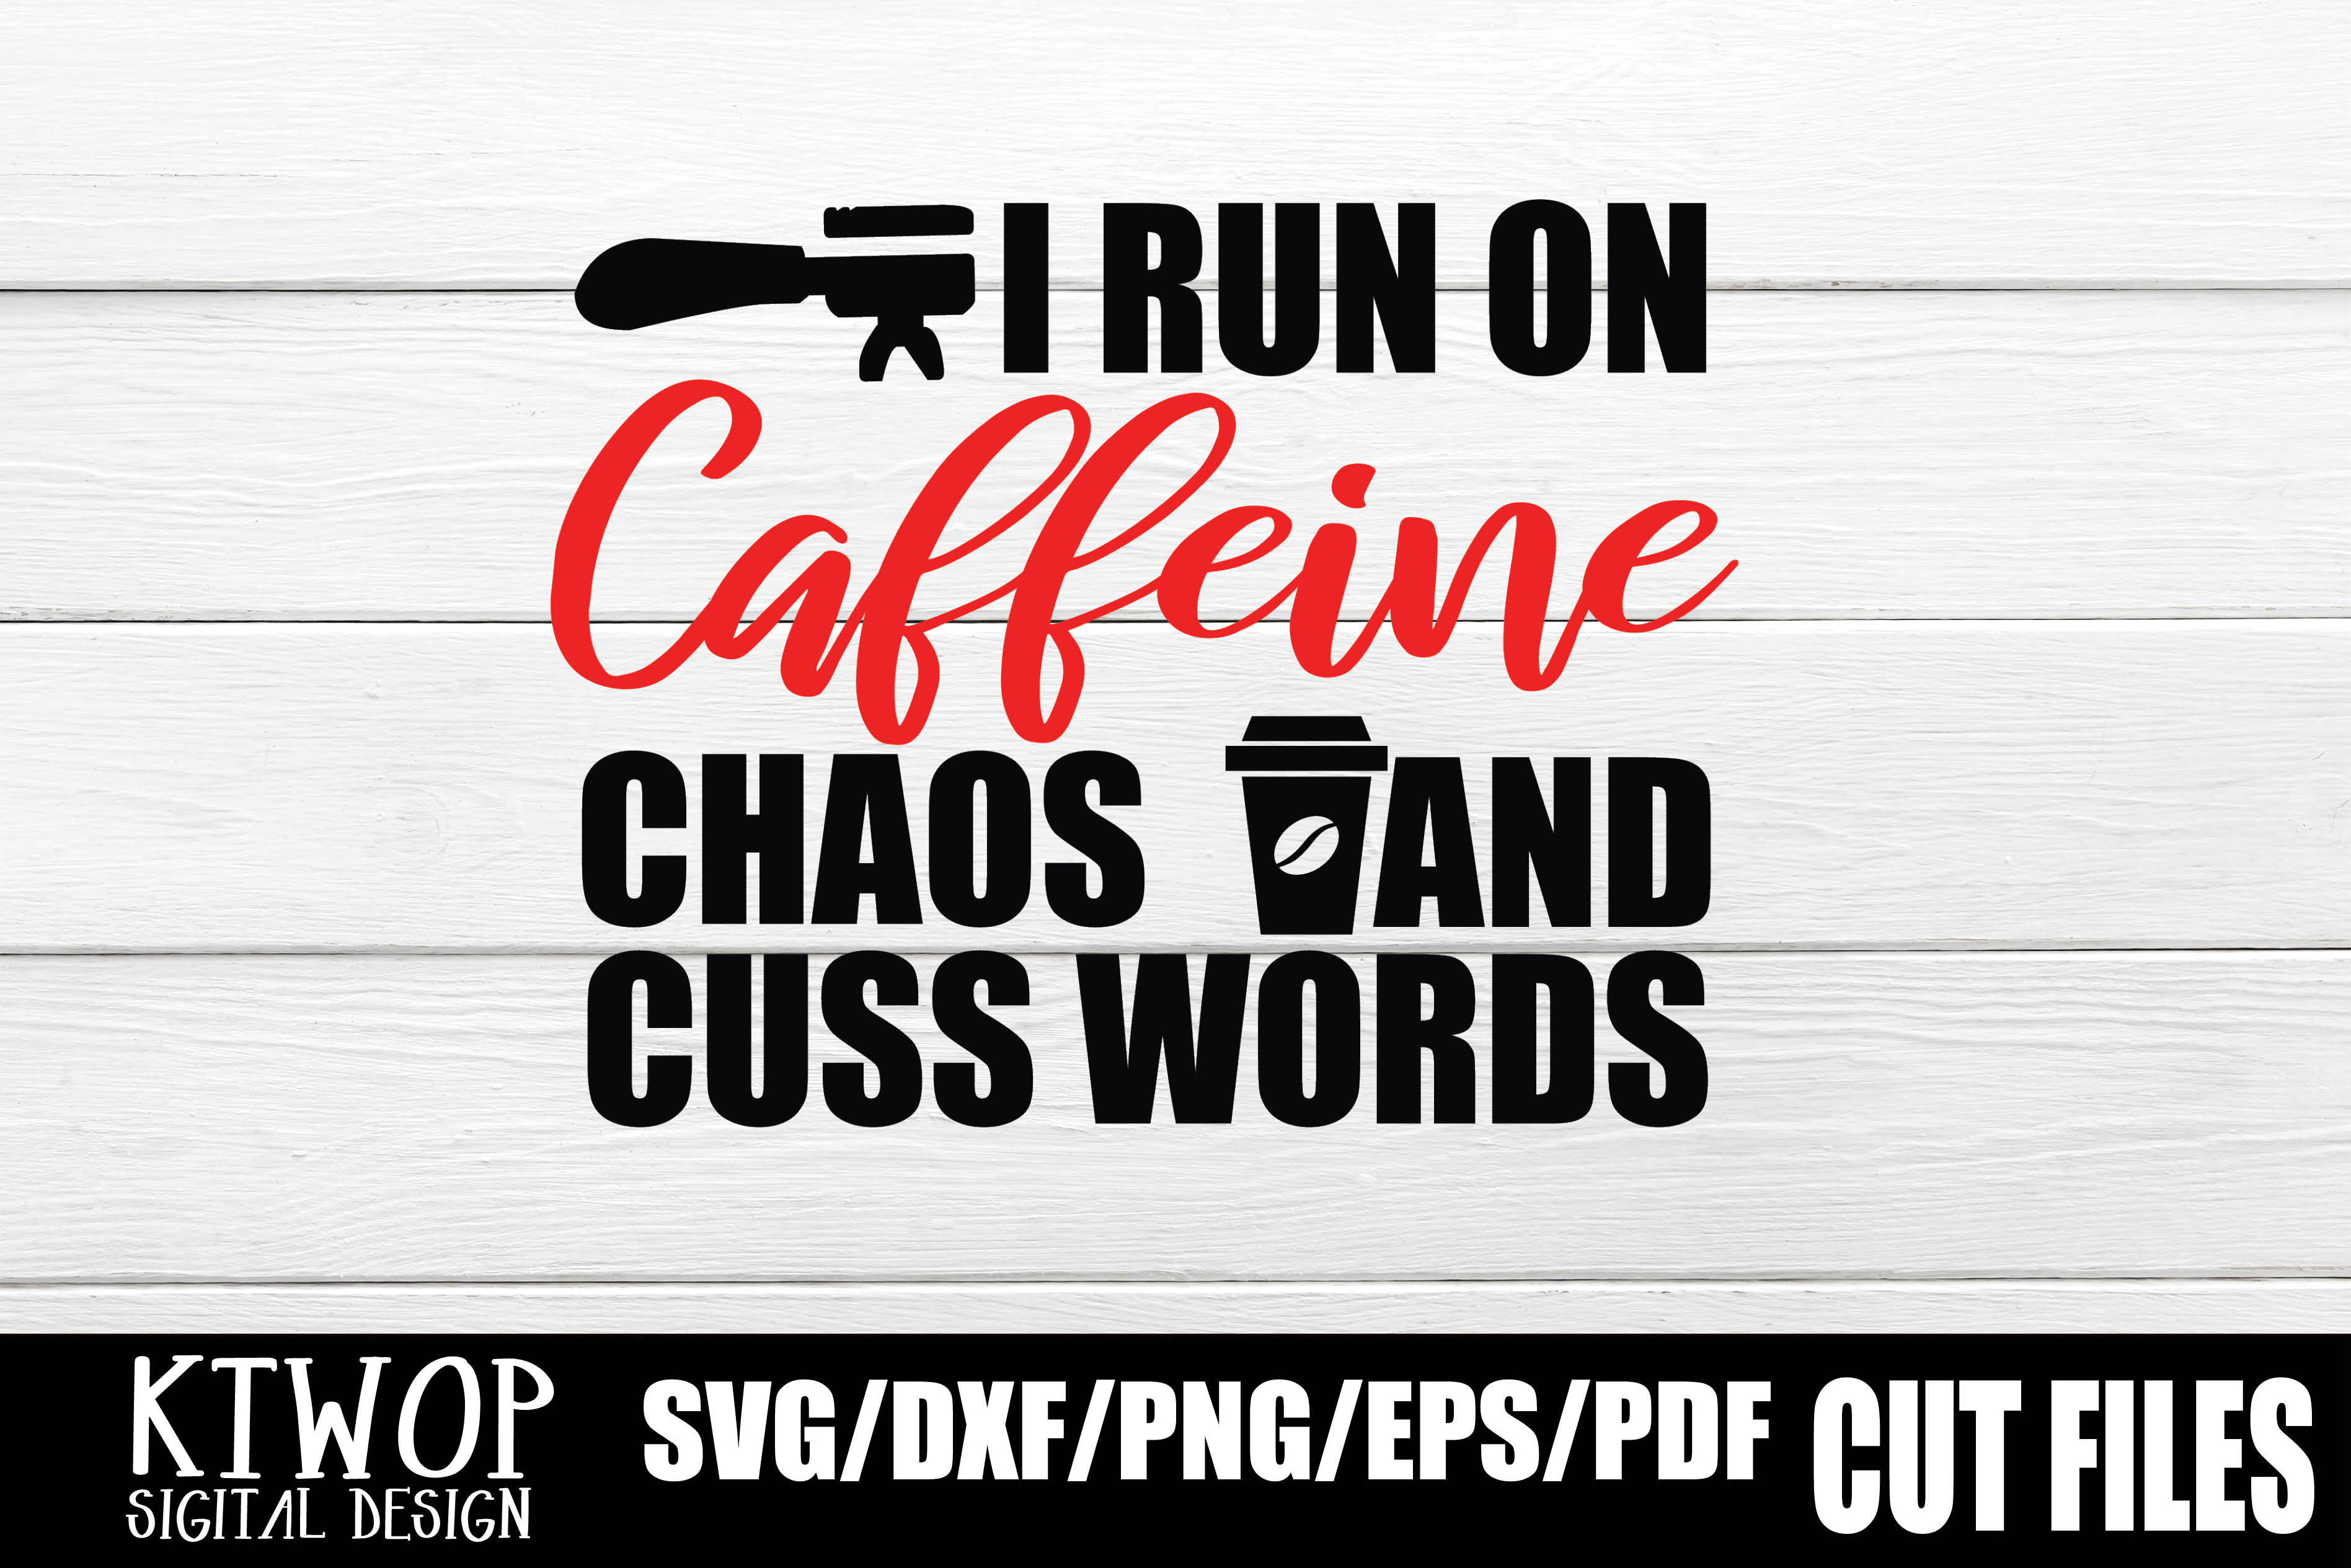 Download Free I Run On Caffeine Chaos And Cuss Words Graphic By Ktwop for Cricut Explore, Silhouette and other cutting machines.